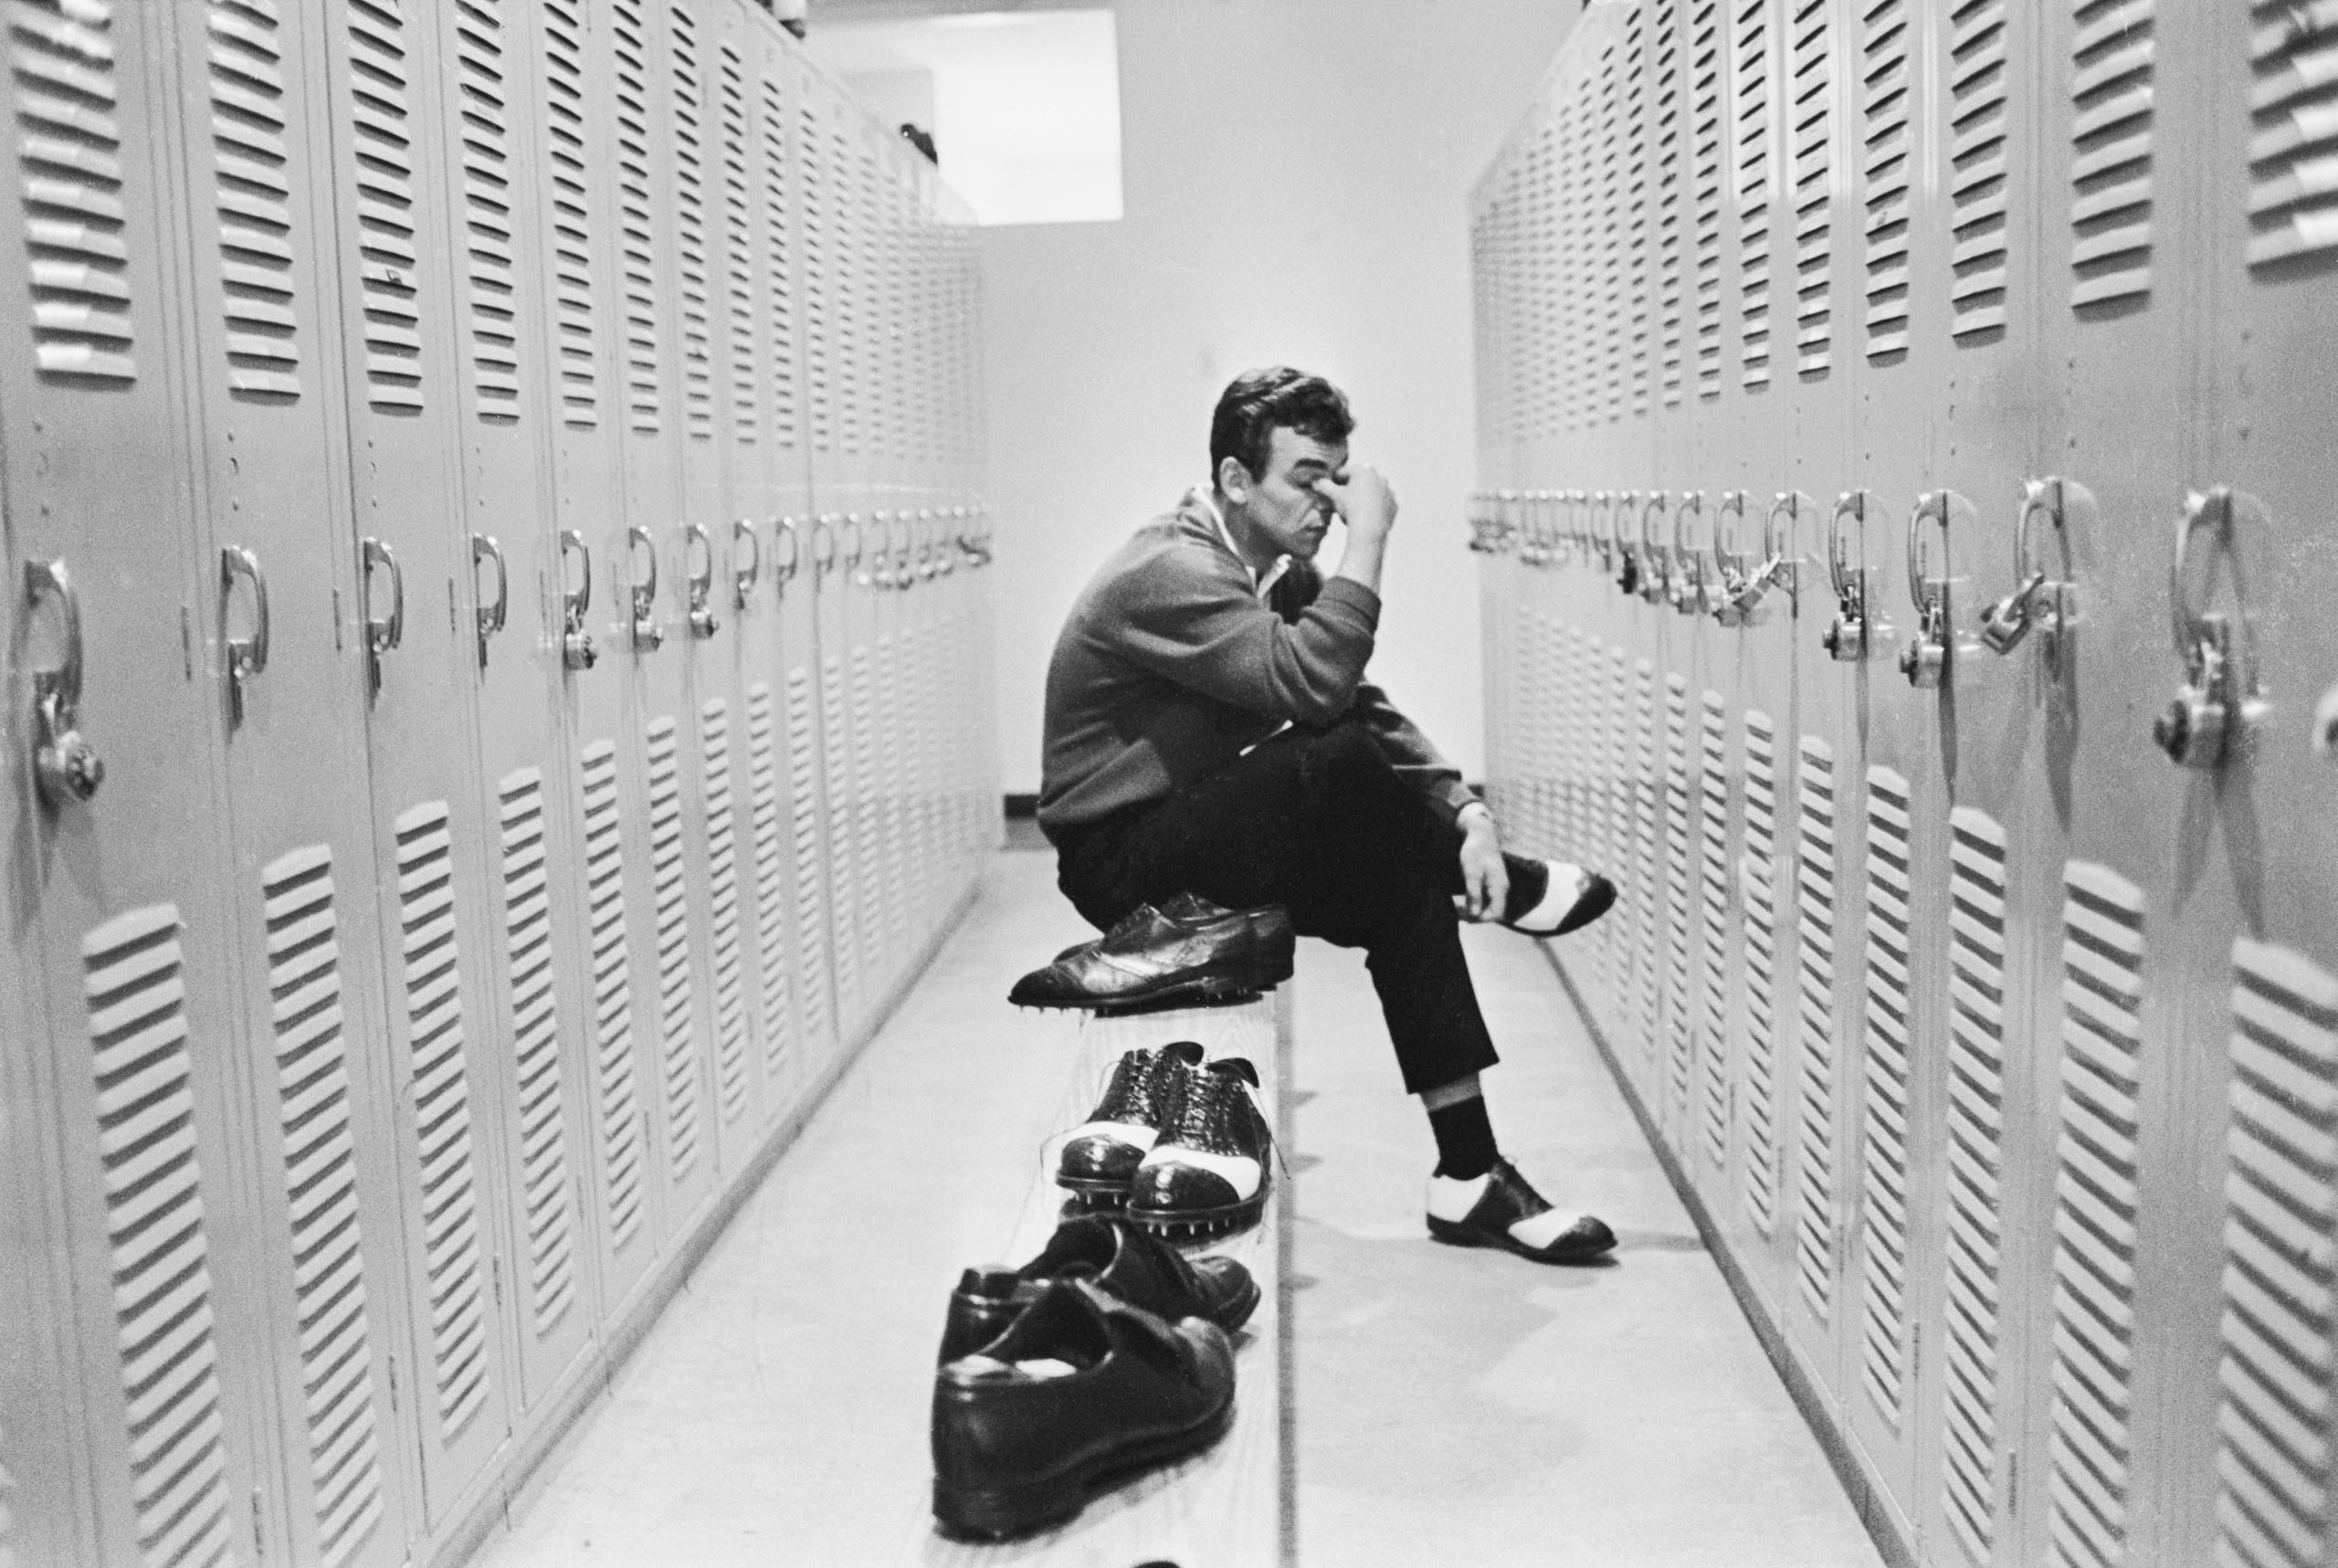 Tony Jacklin in a locker room during the Florida Citrus Open at Rio Pinar Country Club, Orlando, Florida